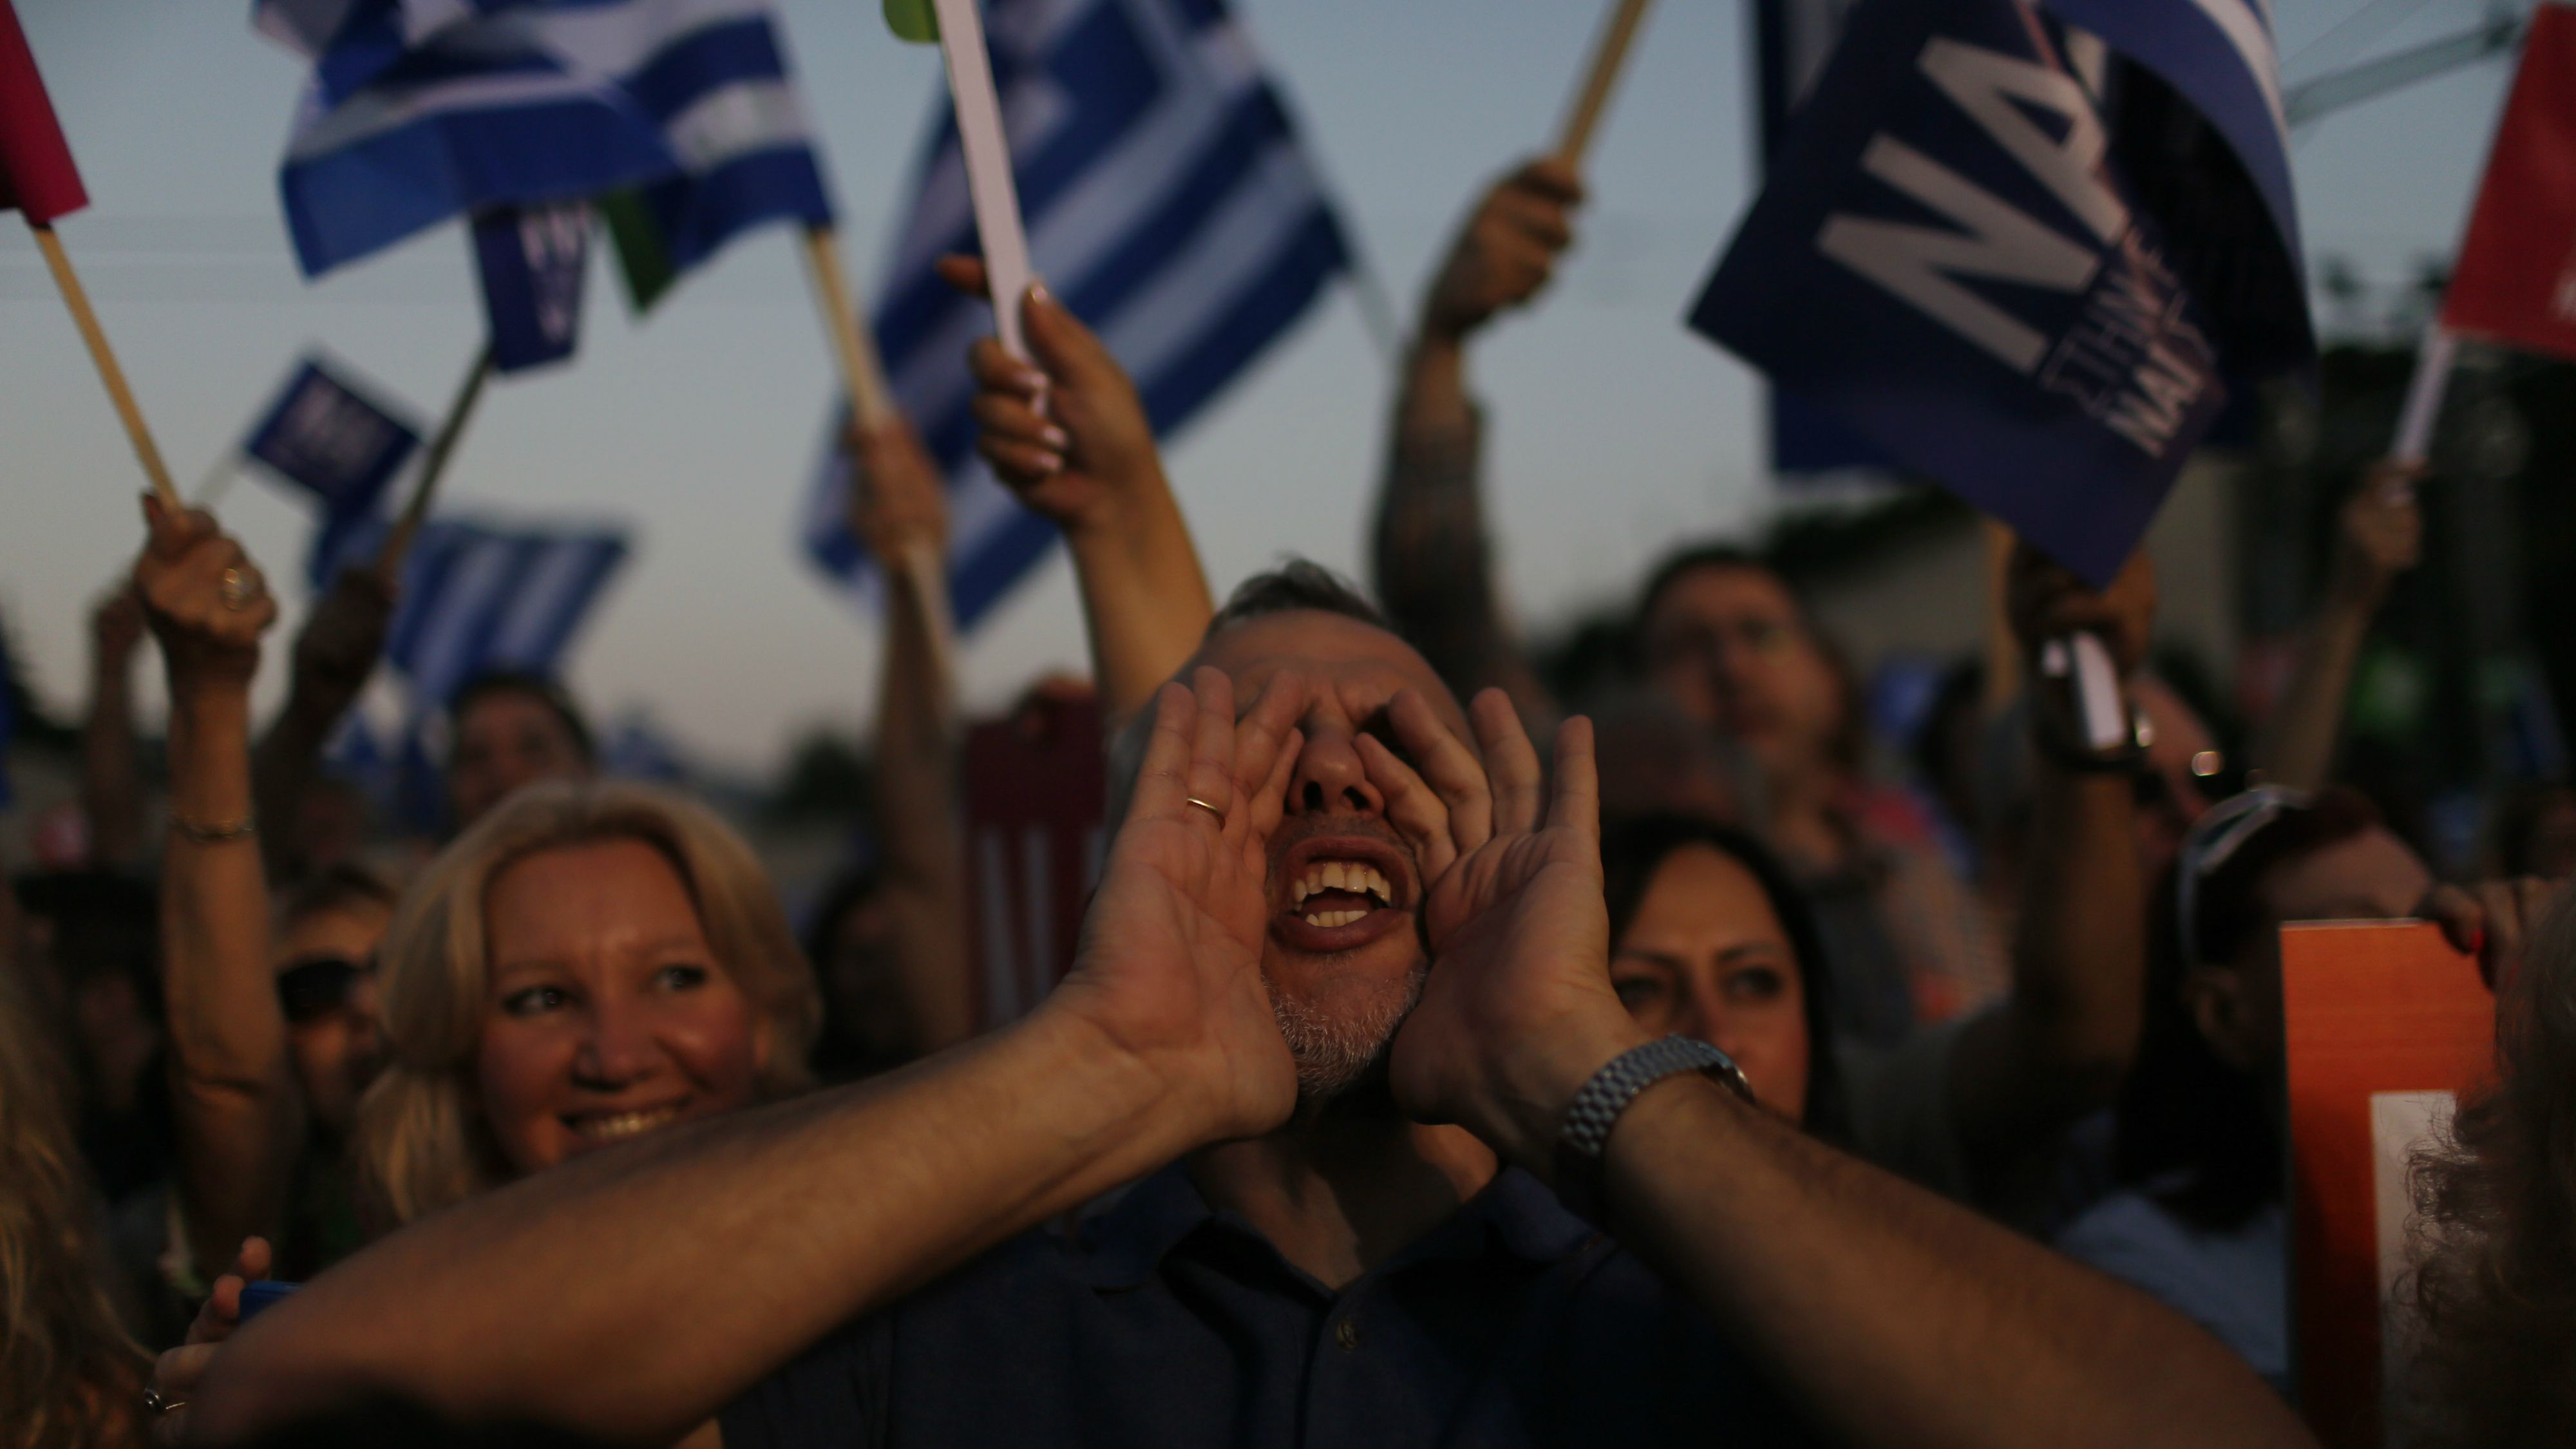 A demonstrator shouts slogans during a rally organized by supporters of the Yes vote in Athens, Friday, July 3, 2015. A new opinion poll shows a dead heat in Greece's referendum campaign with just two days to go before Sunday's vote on whether Greeks should accept more austerity in return for bailout loans. (A demonstrator shouts slogans during a rally organized by supporters of the Yes vote in Athens, Friday, July 3, 2015. A new opinion poll shows a dead heat in Greece's referendum campaign with just two days to go before Sunday's vote on whether Greeks should accept more austerity in return for bailout loans. (AP Photo/Emilio Morenatti